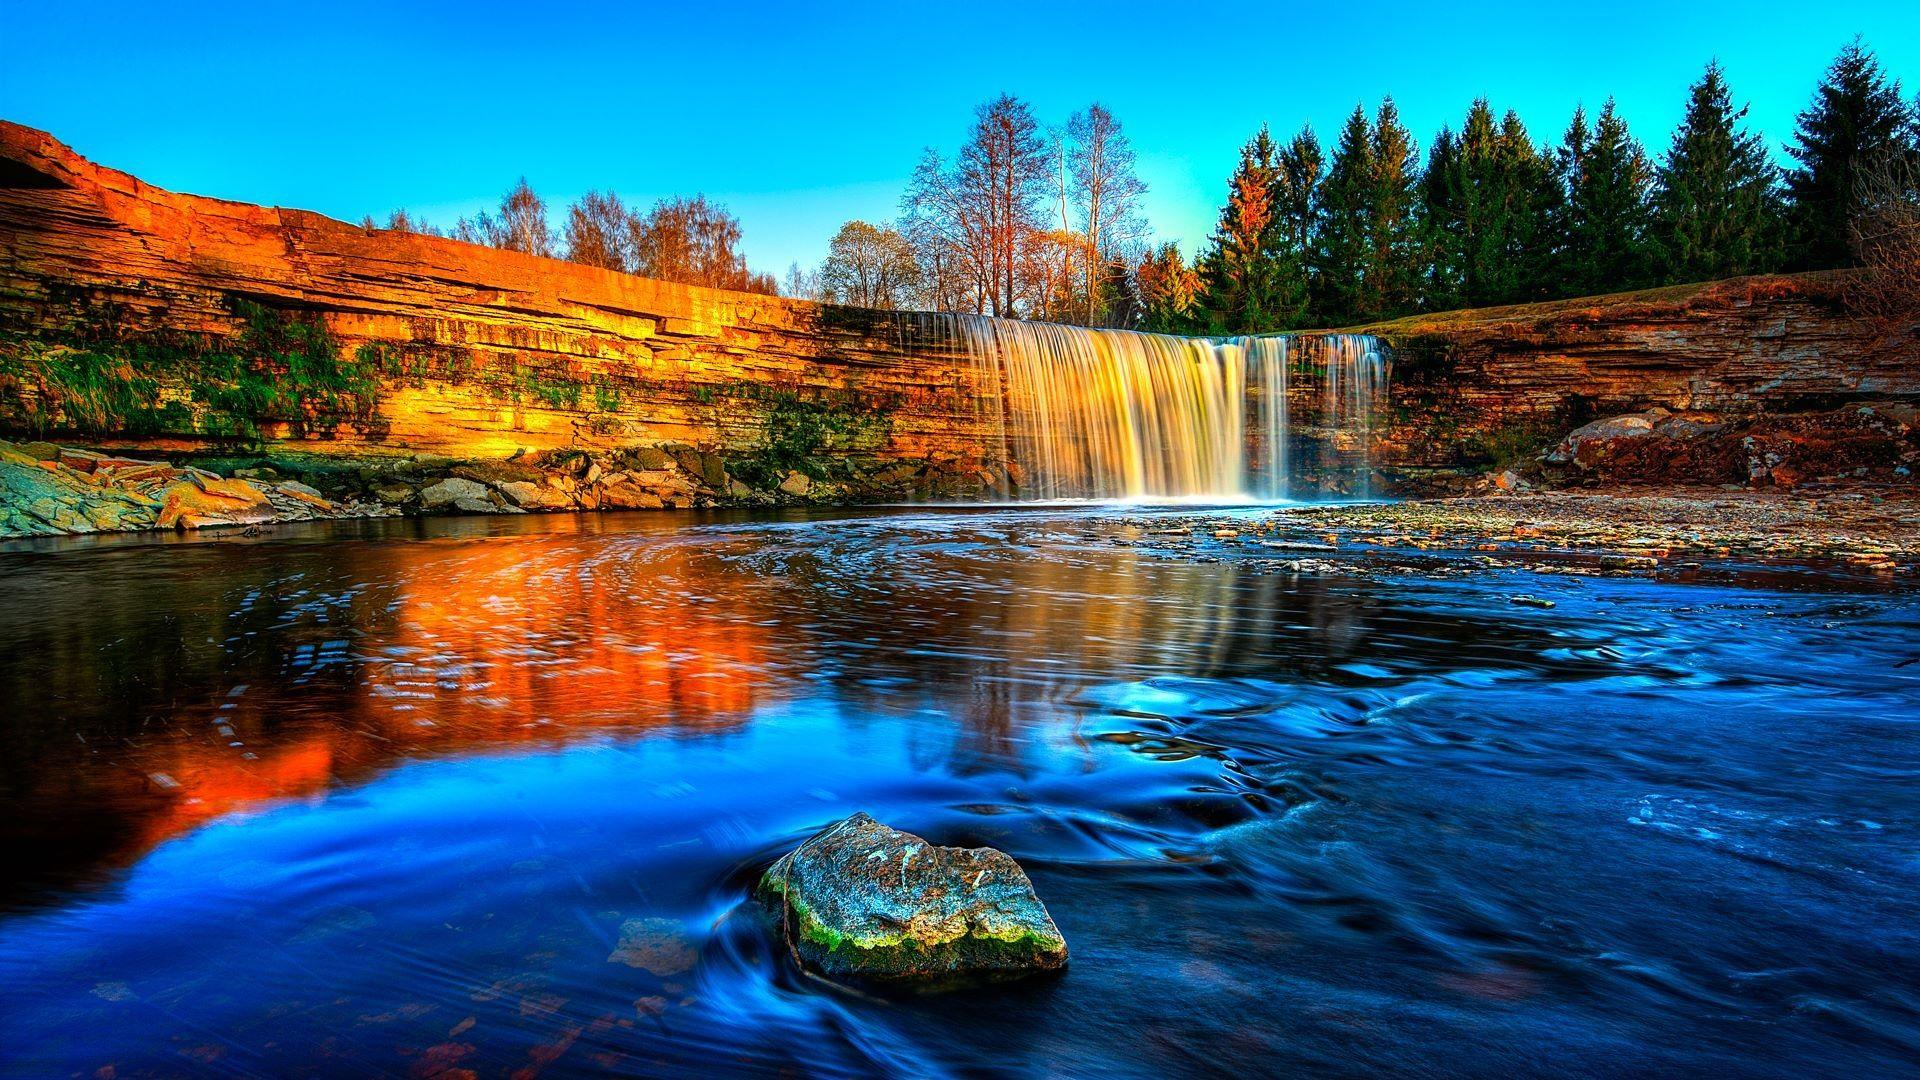 Waterfall in Estonia [1920x1080] : wallpapers